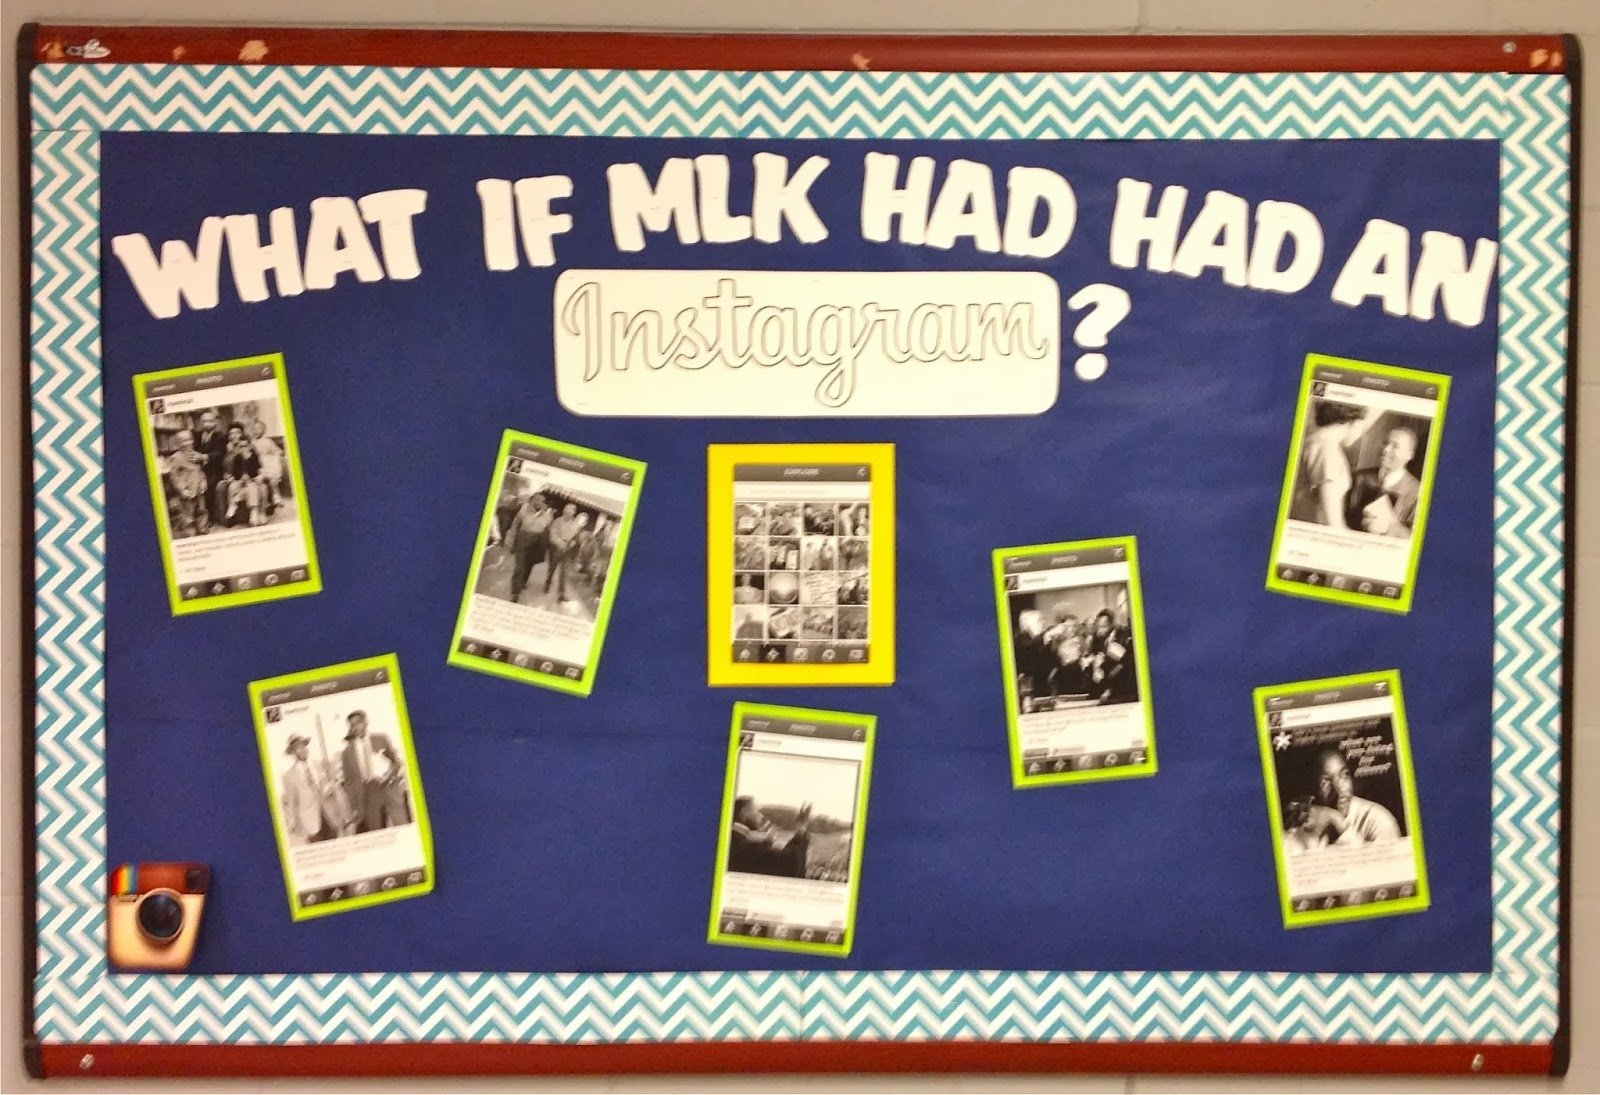 10 Fabulous Black History Month Bulletin Board Ideas beautiful bulletin board ideas for black history month pictures 2021